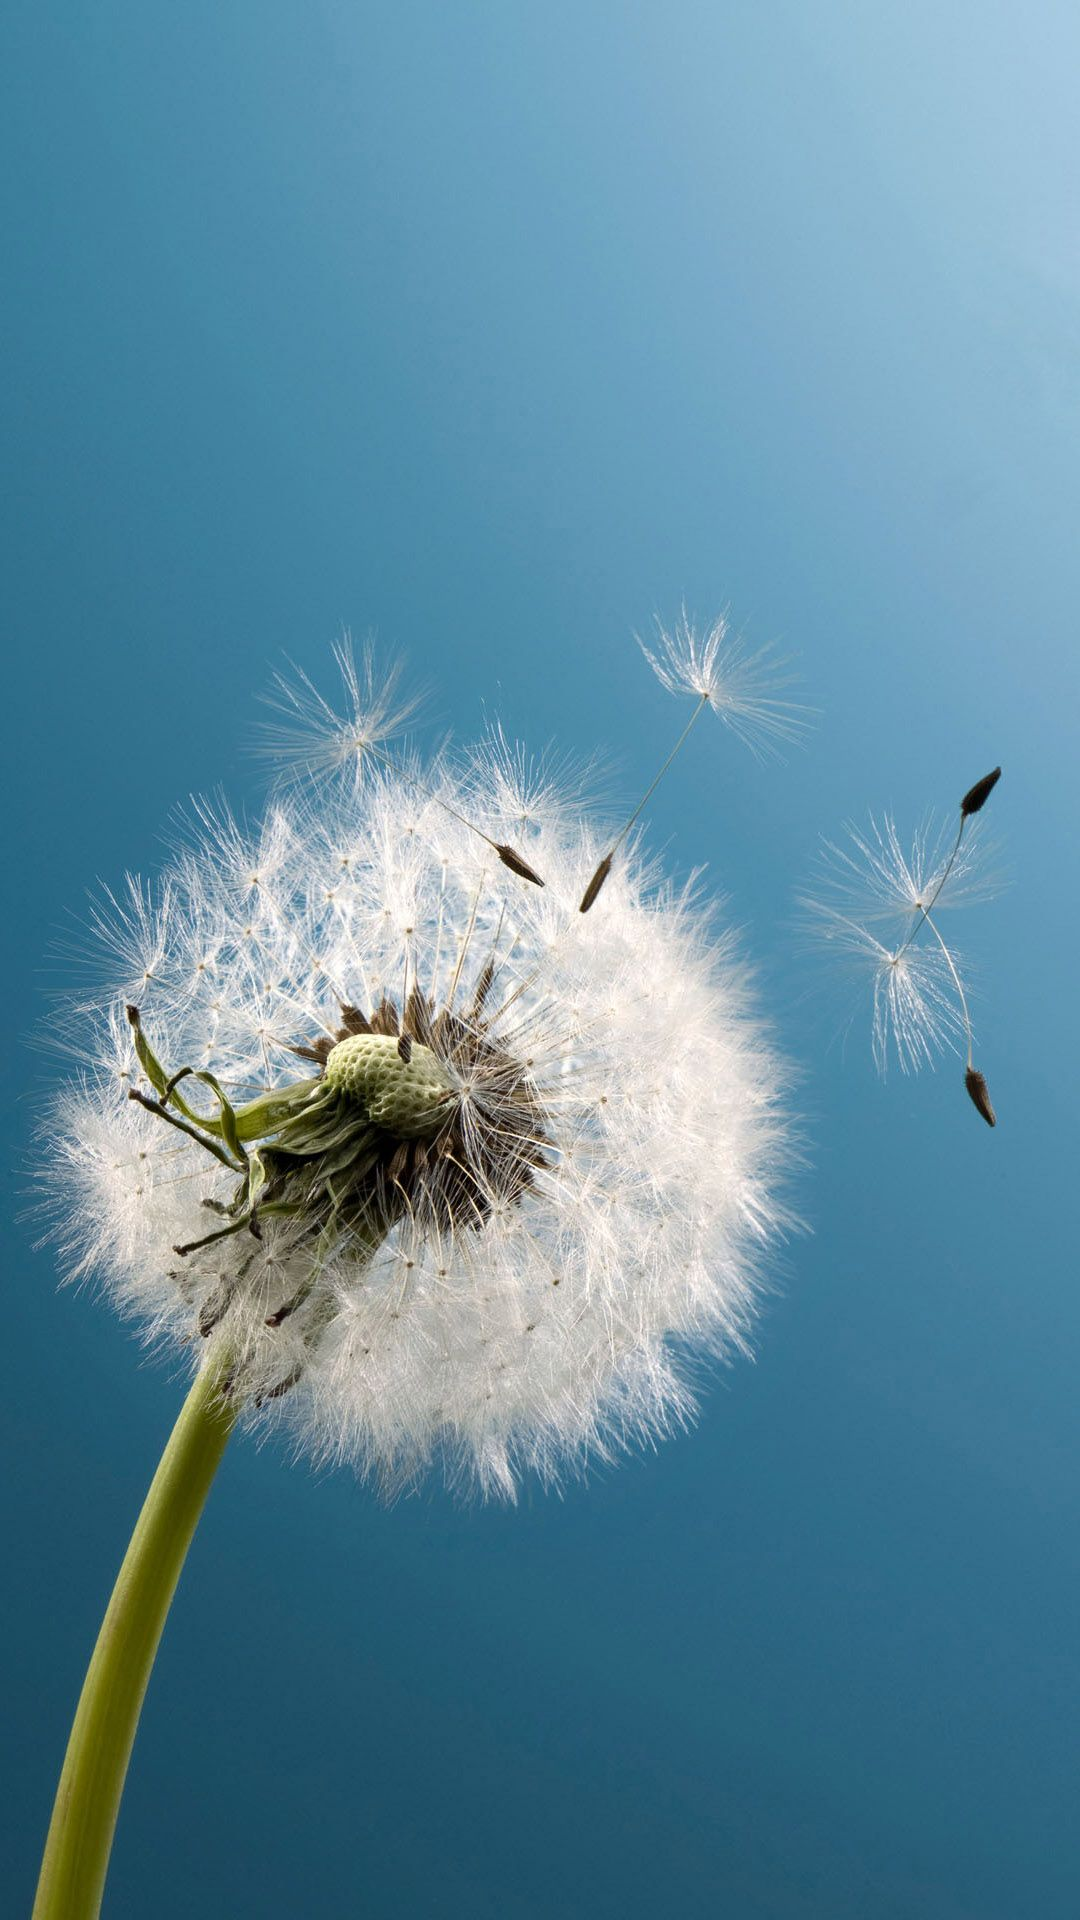 Dandelion Wind Blow Android Wallpaper Wallpapers Wallpaper